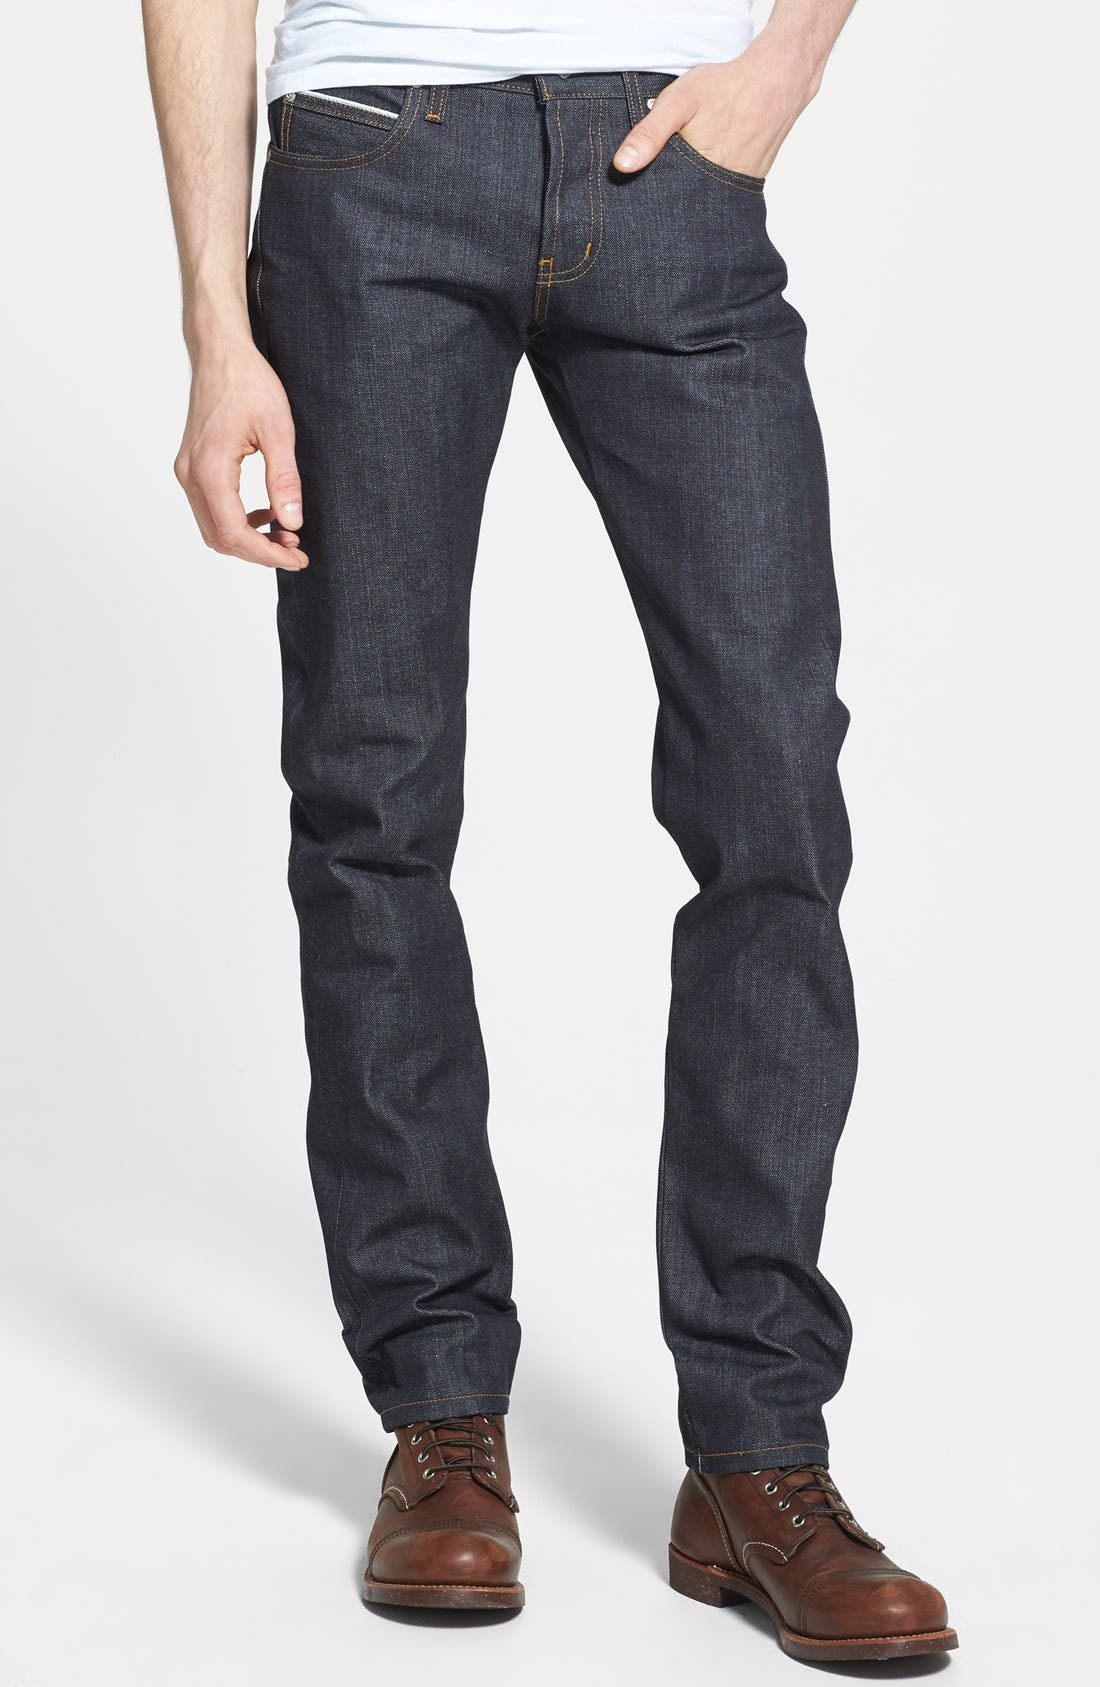 'Super Skinny Guy' Skinny Fit Jeans,                         Main,                         color, Left Hand Twill Selvedge